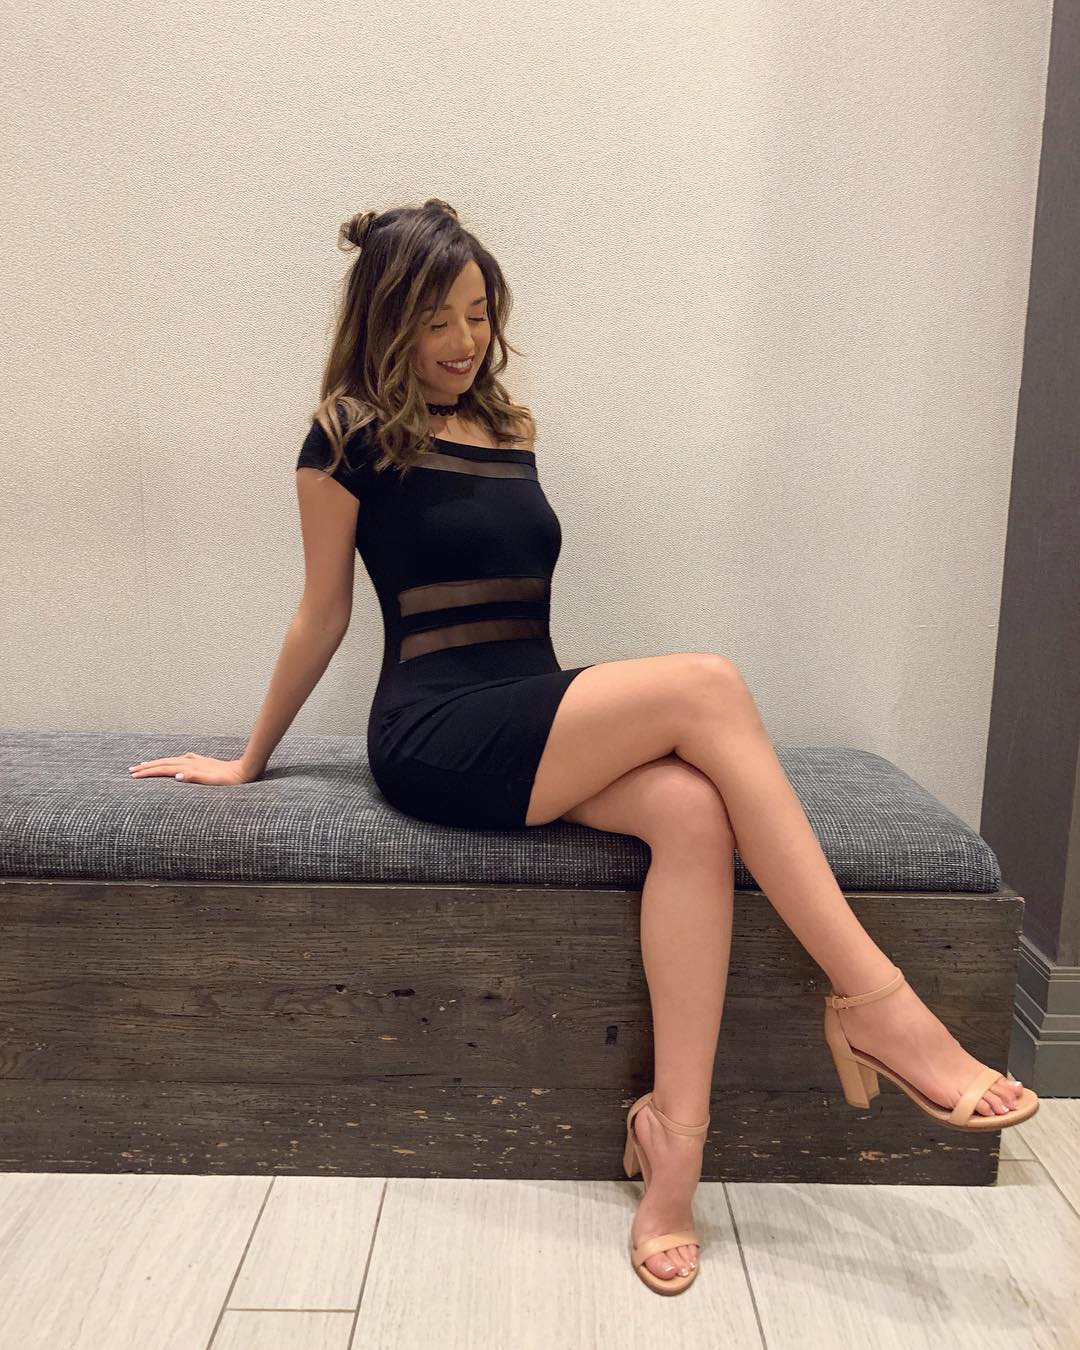 Sexy cute and hot photos from Pokimane Twitch streamers 22 15